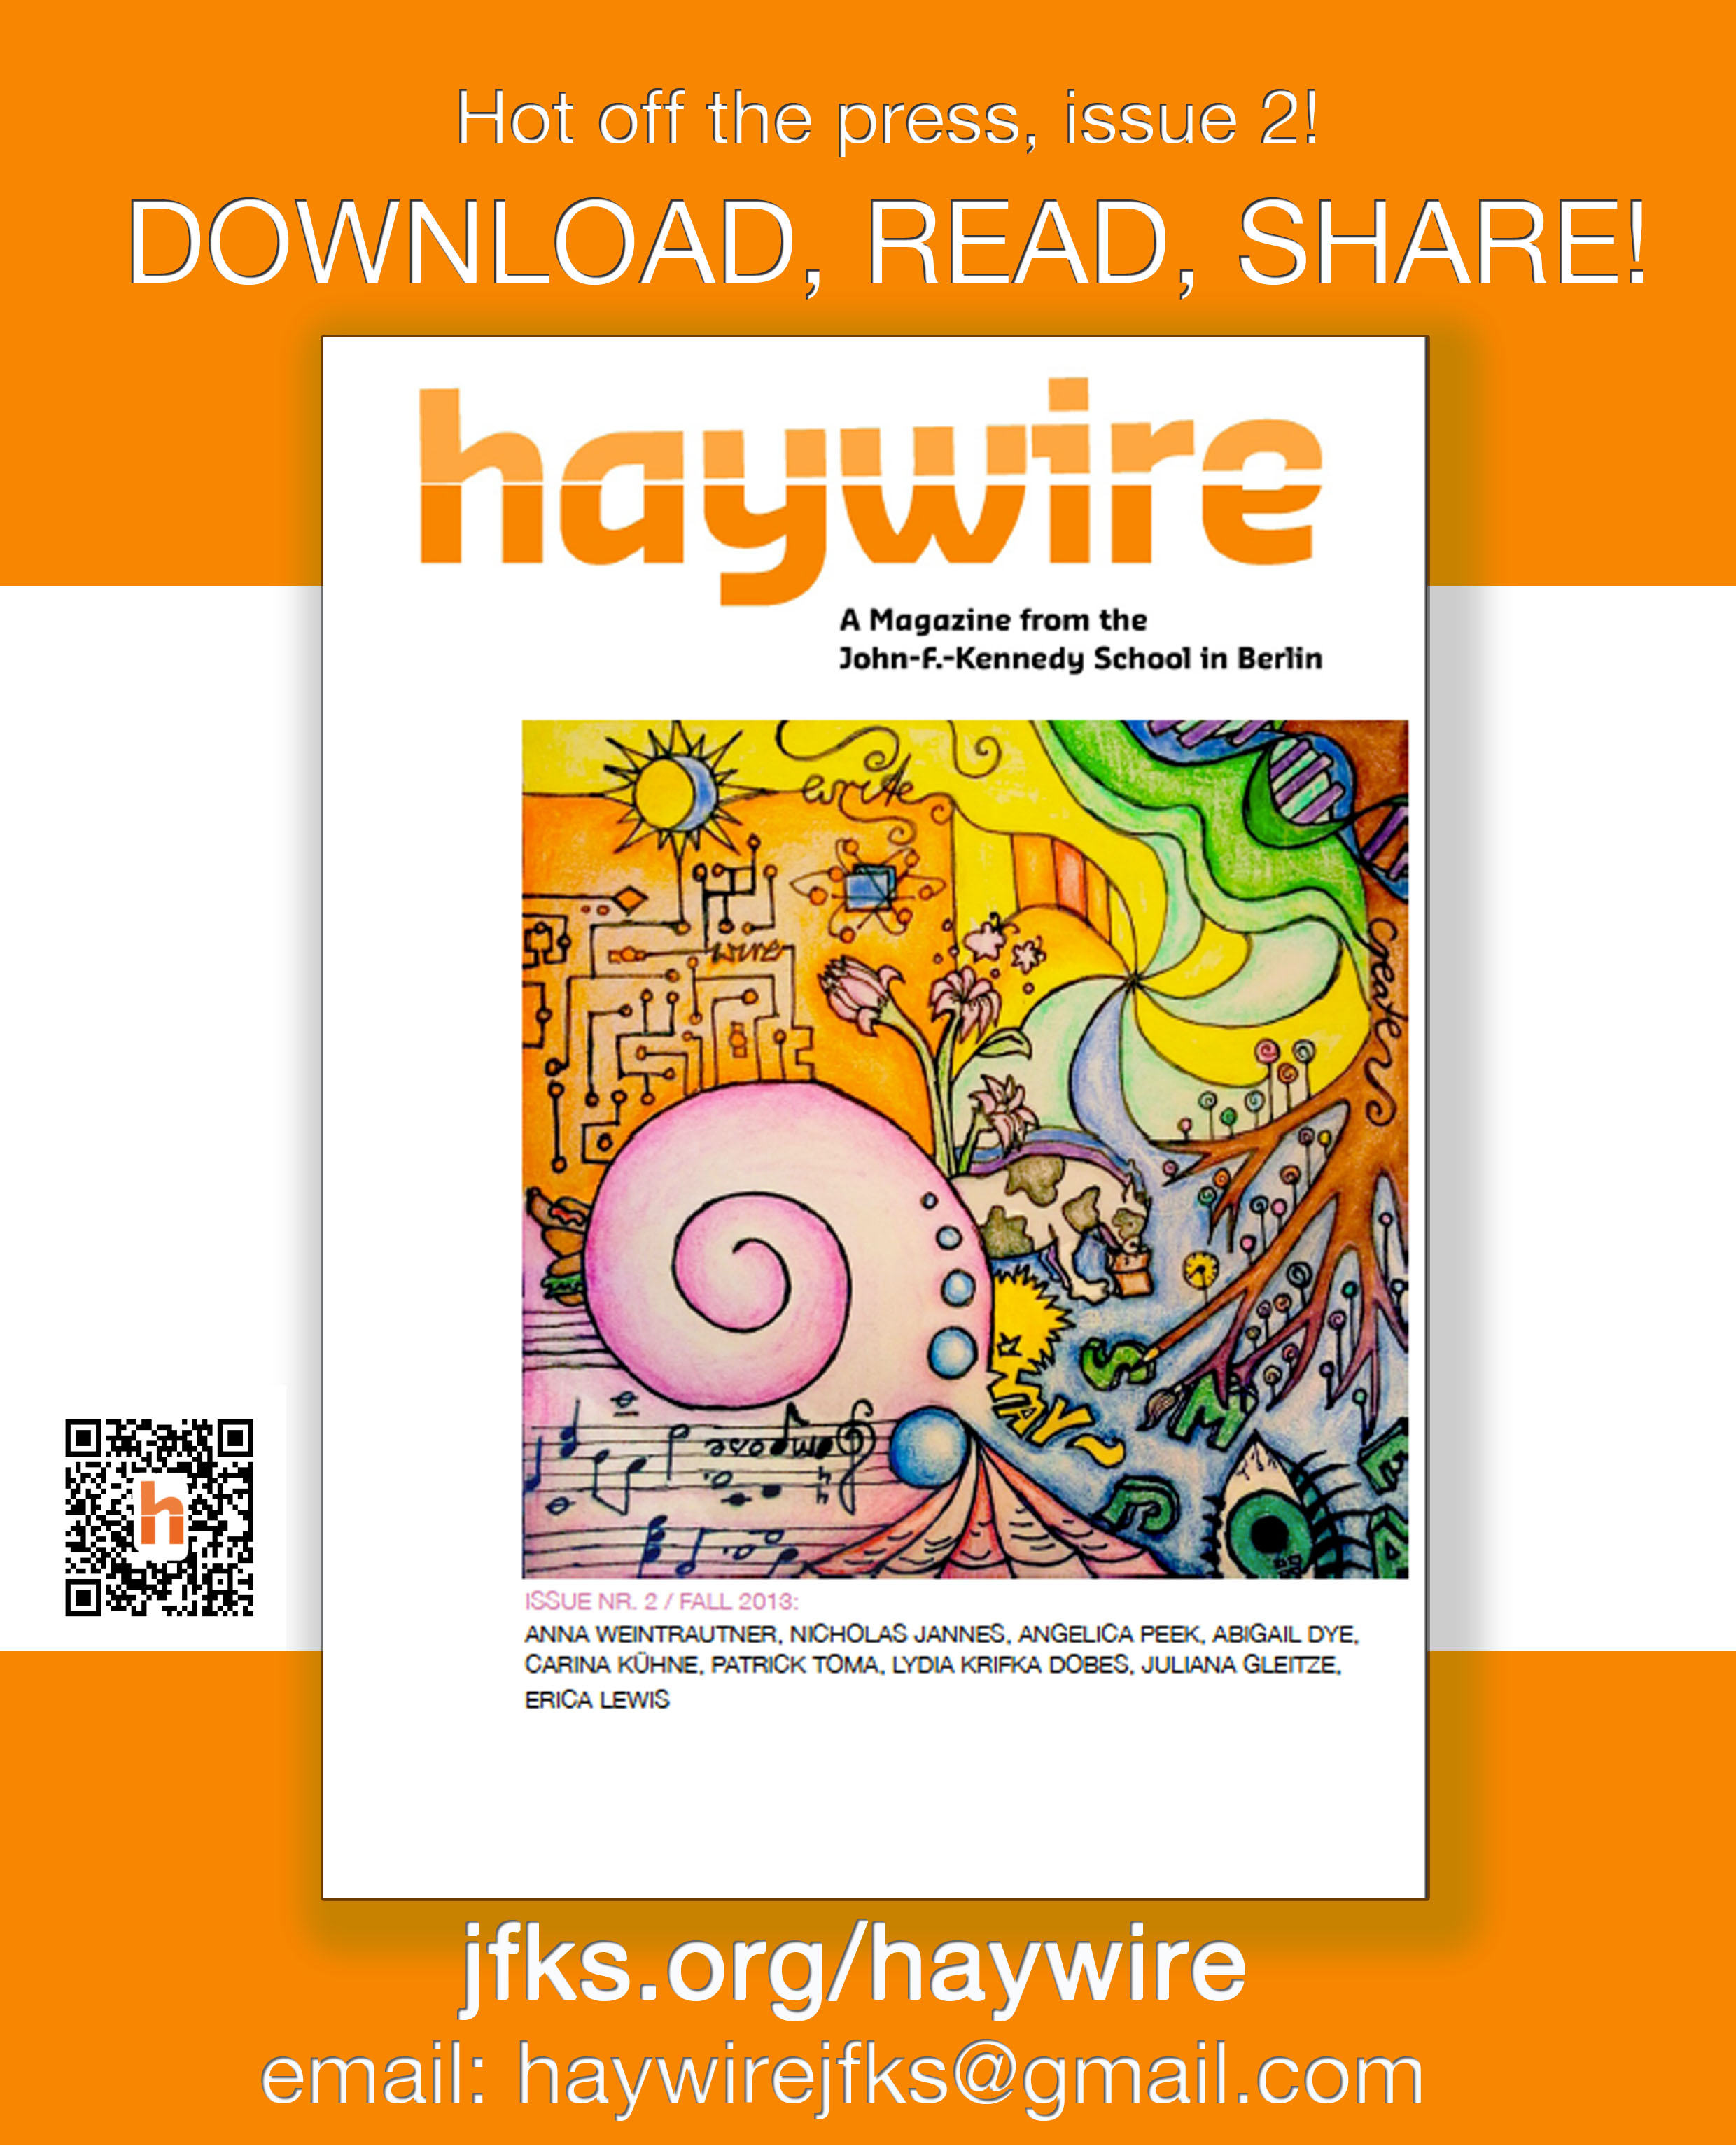 Haywire_issue1_final_newfont